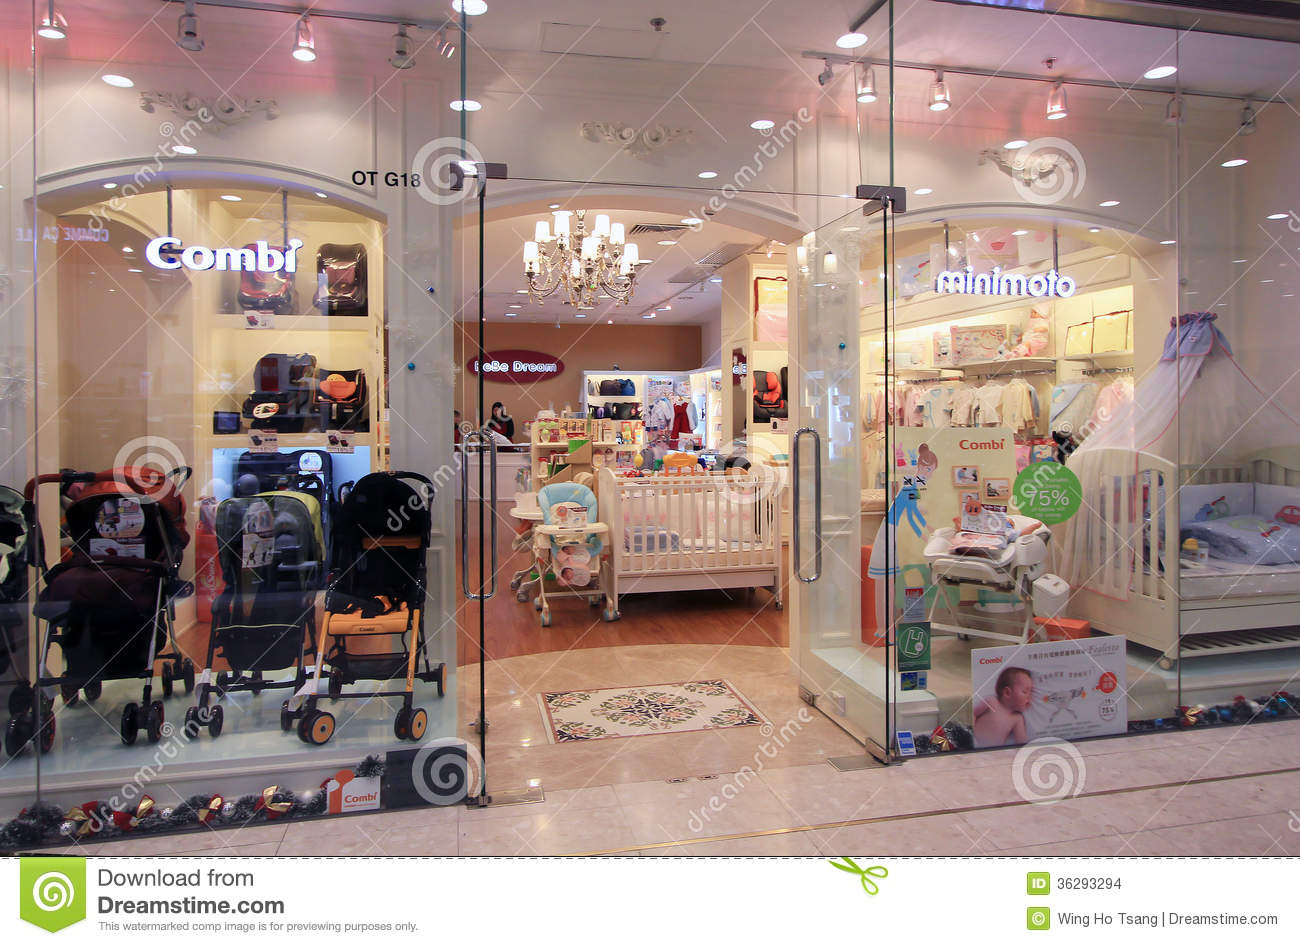 Shanghai Tang is a clothing store that sells mainly mens and womens clothing and accessories, although they do offer a small range of childrenswear and adorable silk baby shoes in .